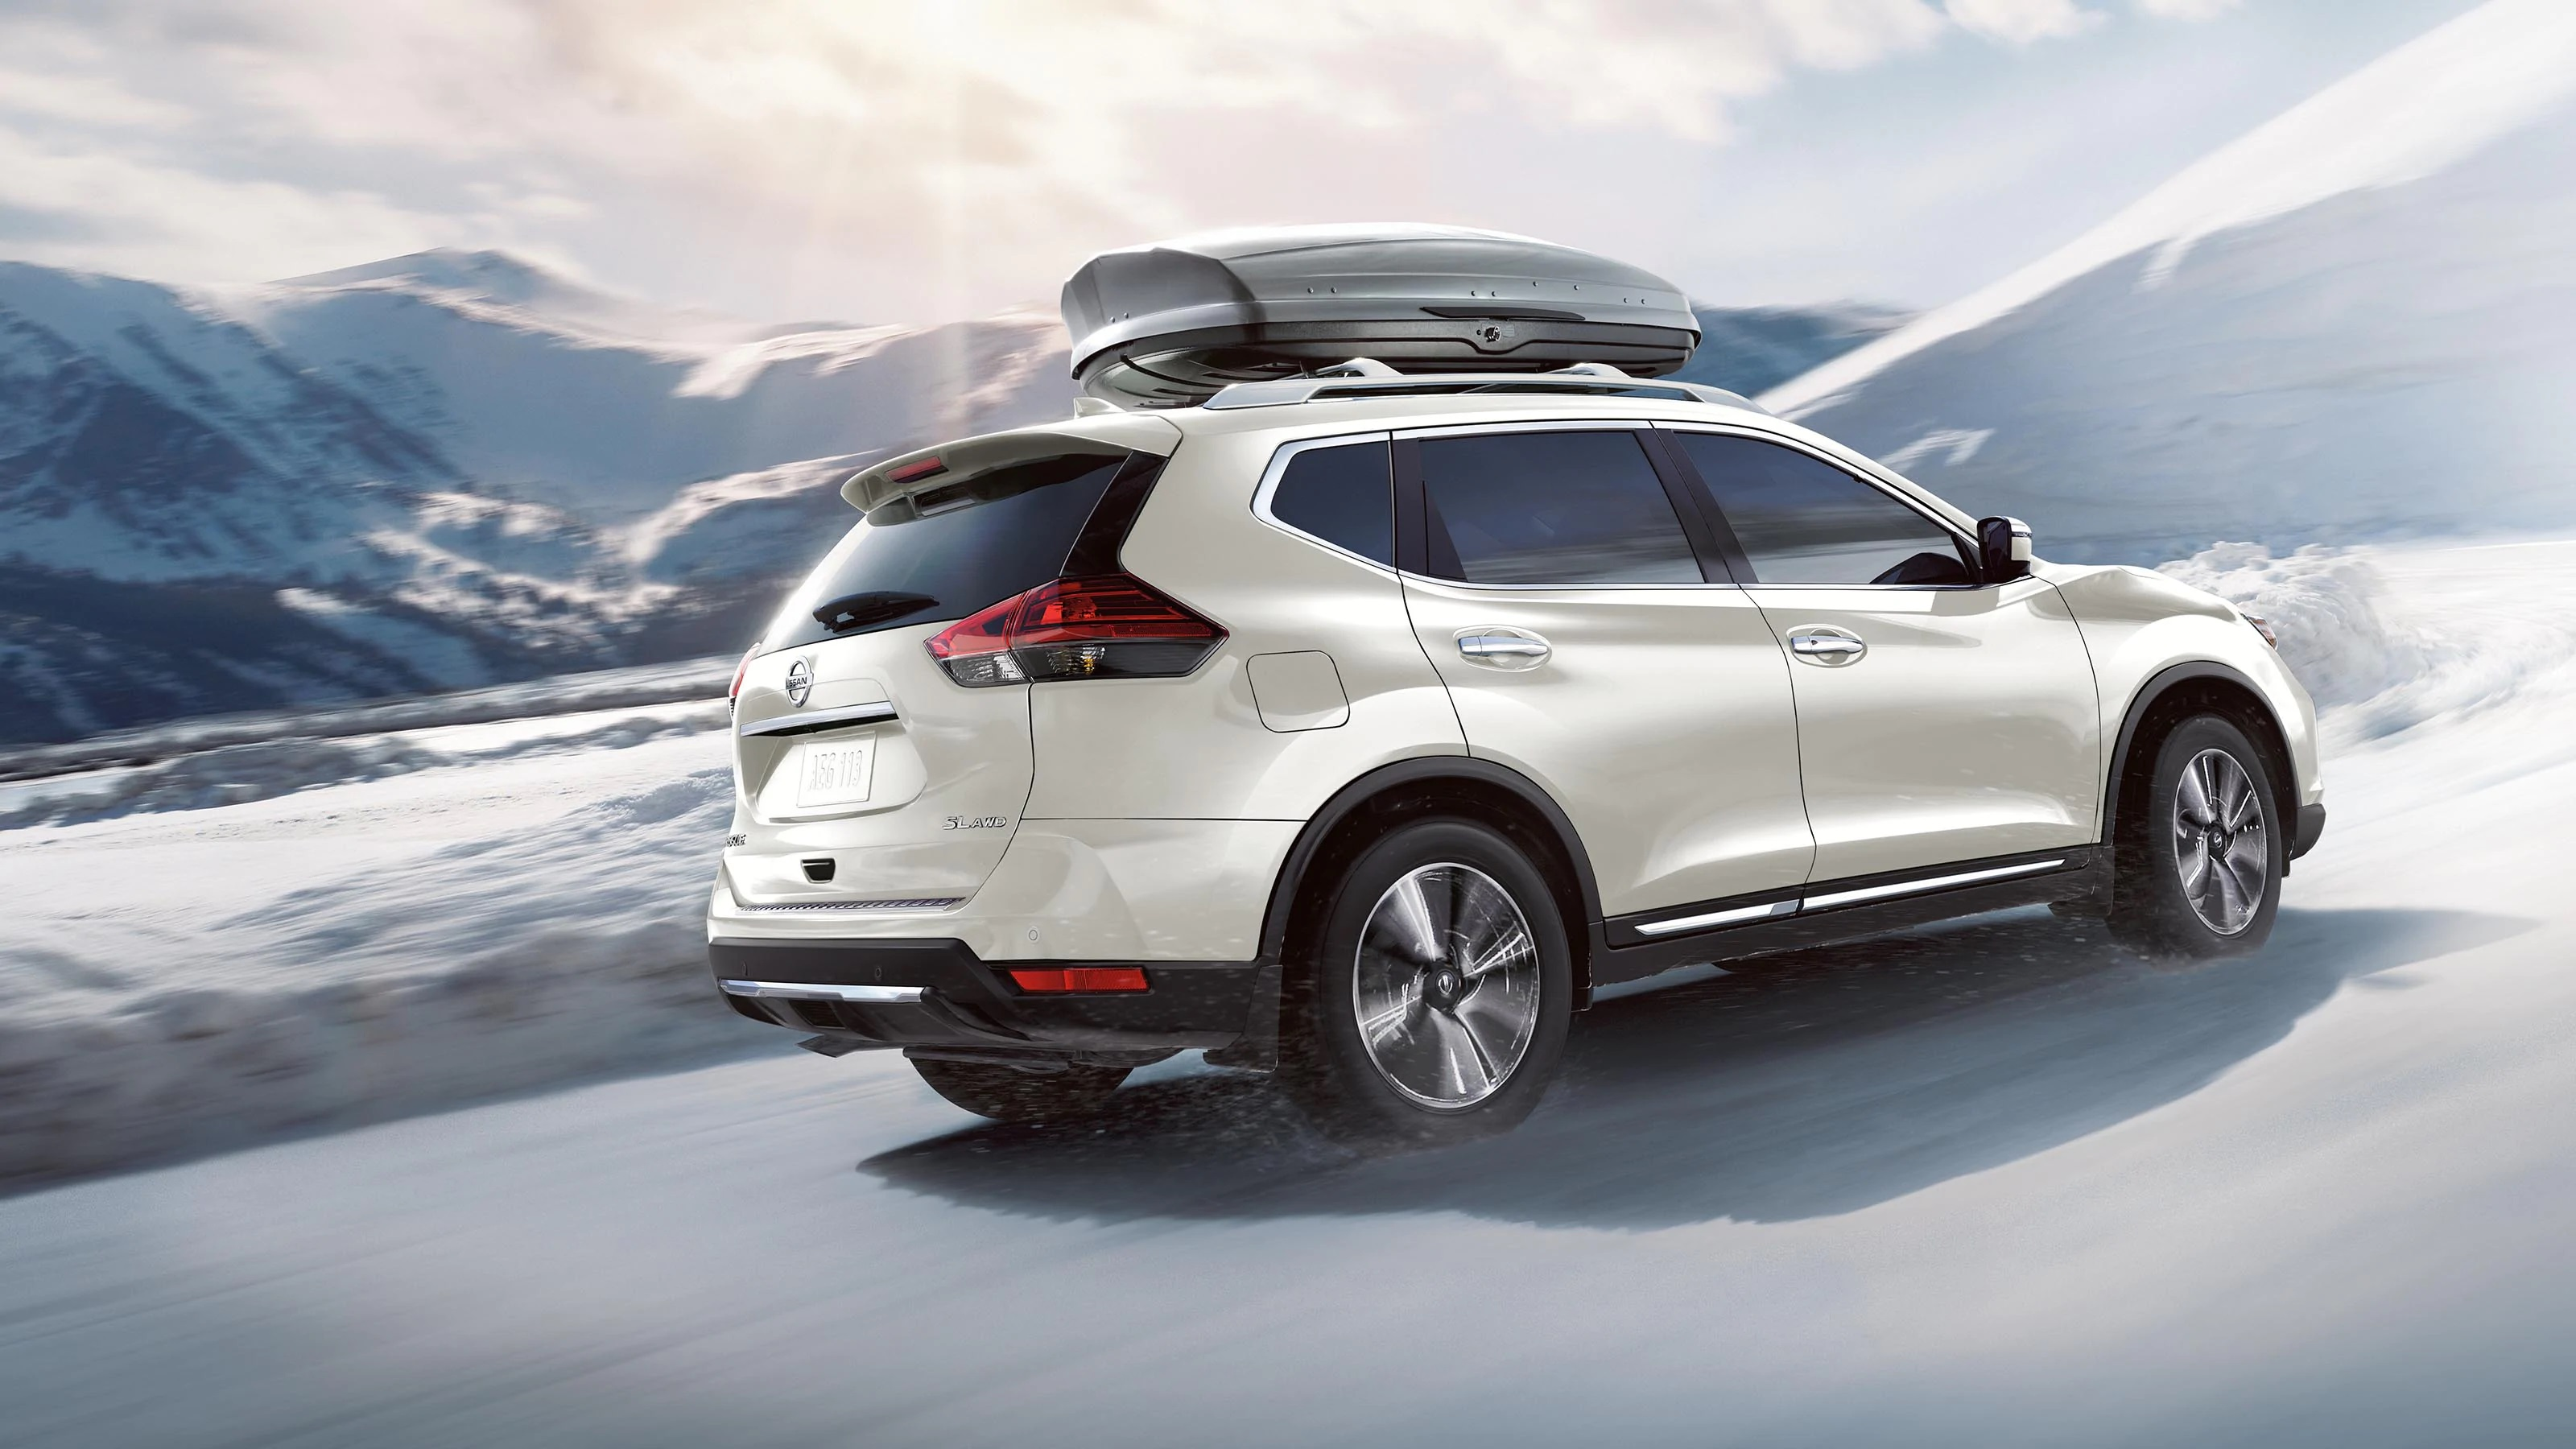 2020 Nissan Rogue Leasing near Tinley Park, IL